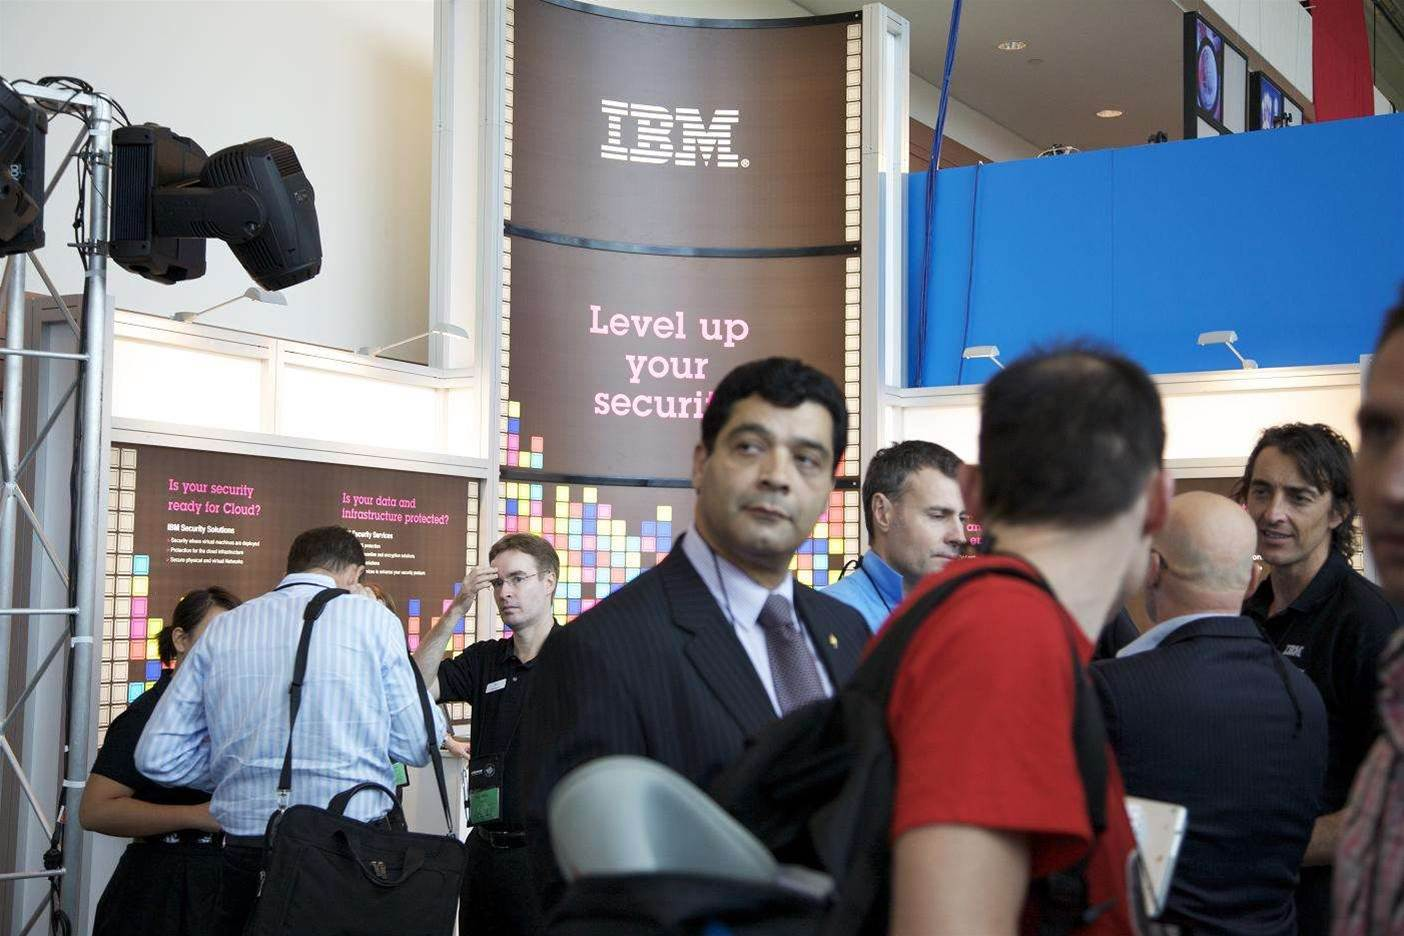 IBM unleashes virus on AusCERT delegates